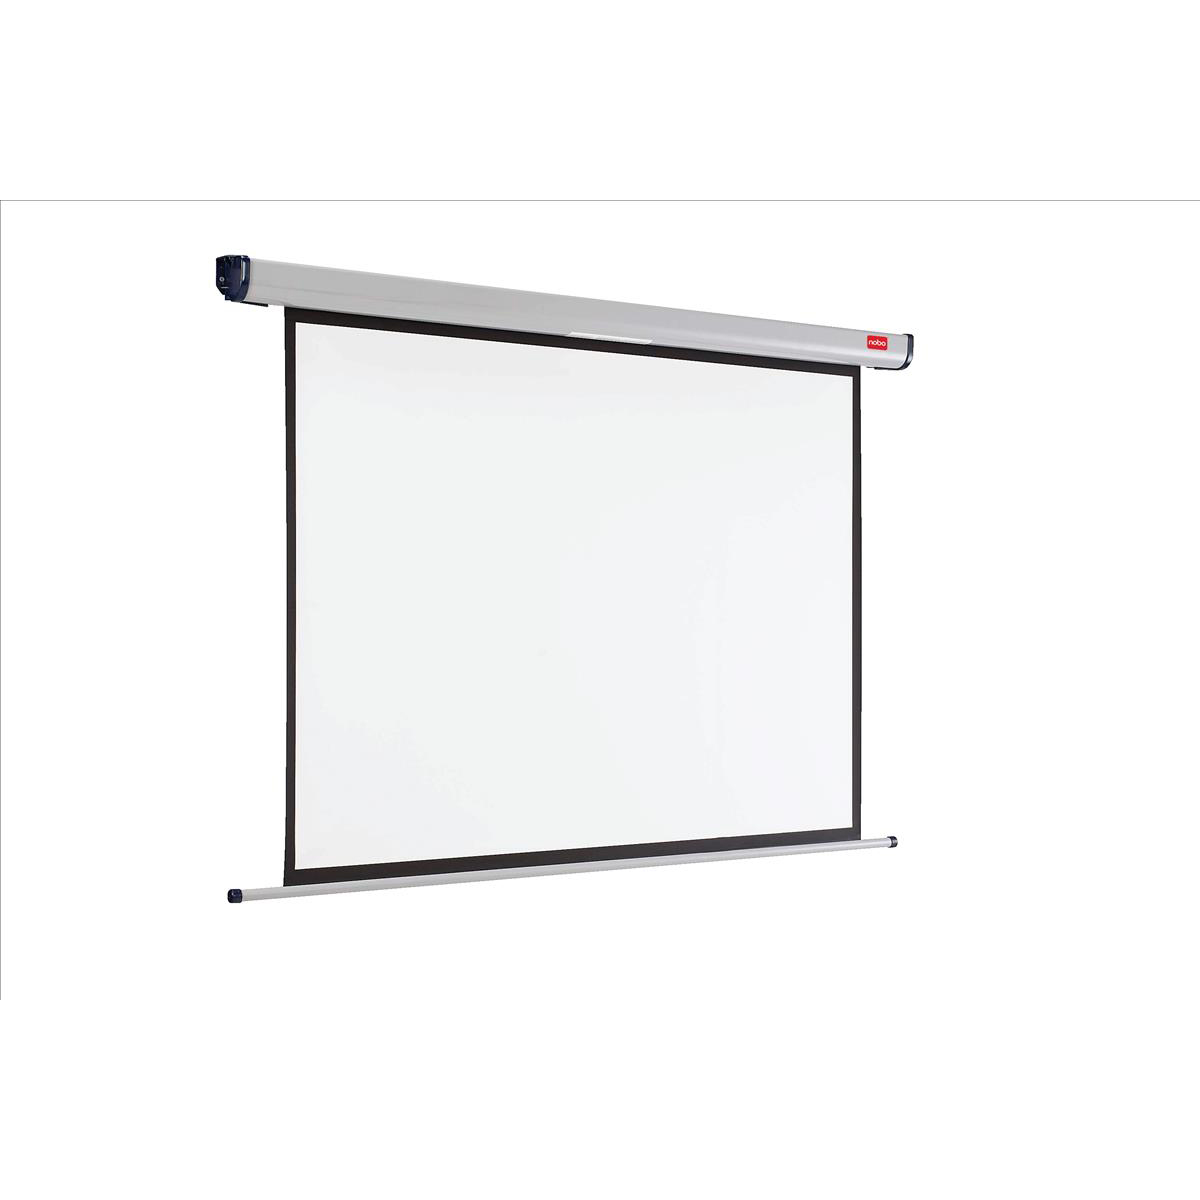 Screens Nobo Wall Widescreen Projection Screen W2000xH1350mm Ref 1902393W-